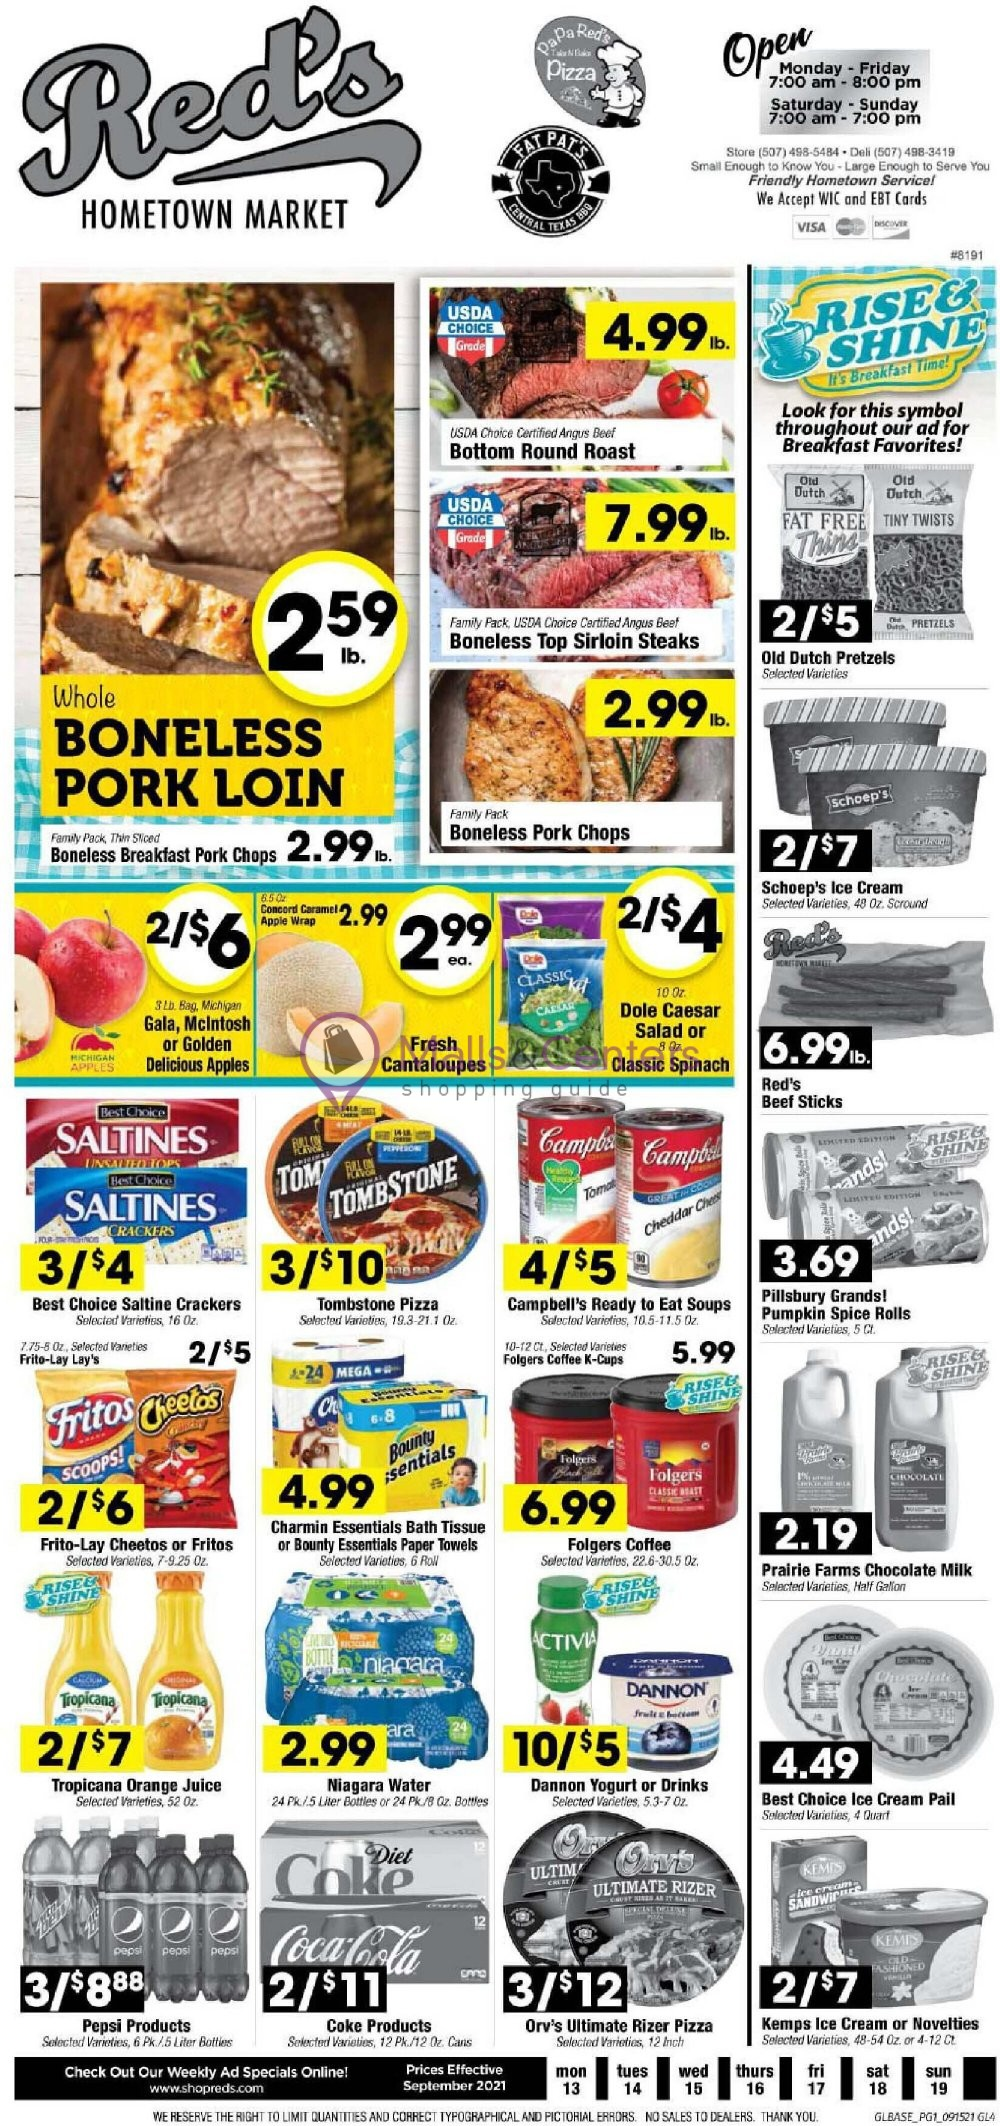 weekly ads Red's Market - page 1 - mallscenters.com